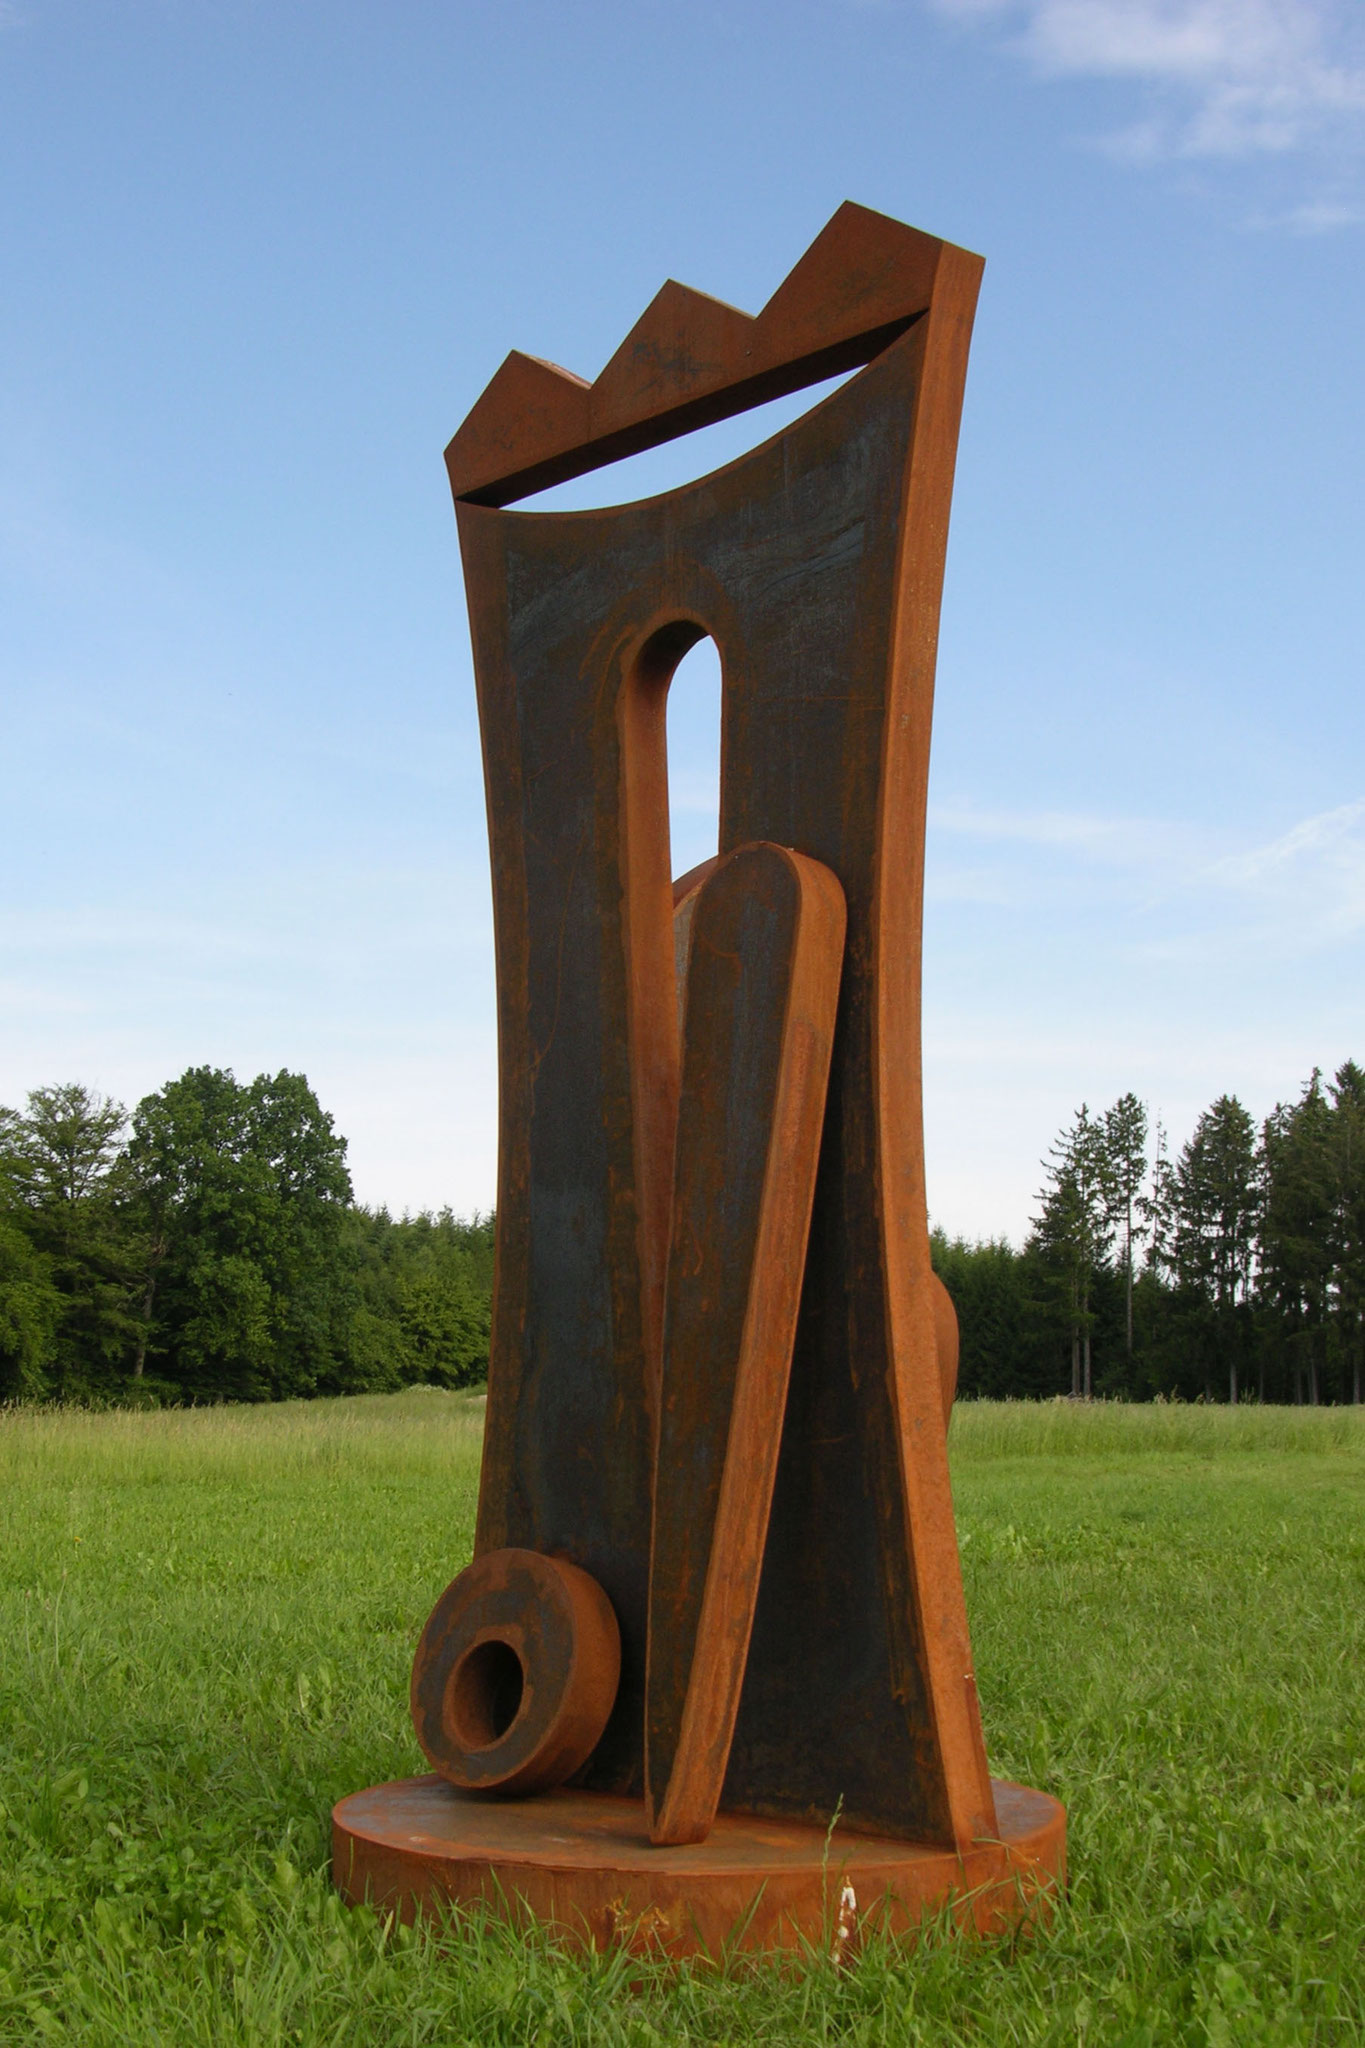 Abstract Cor-Ten sculpture by HEX. HEX is a Fellow of the ROYAL BRITISH SOCIETY of SCULPTORS.